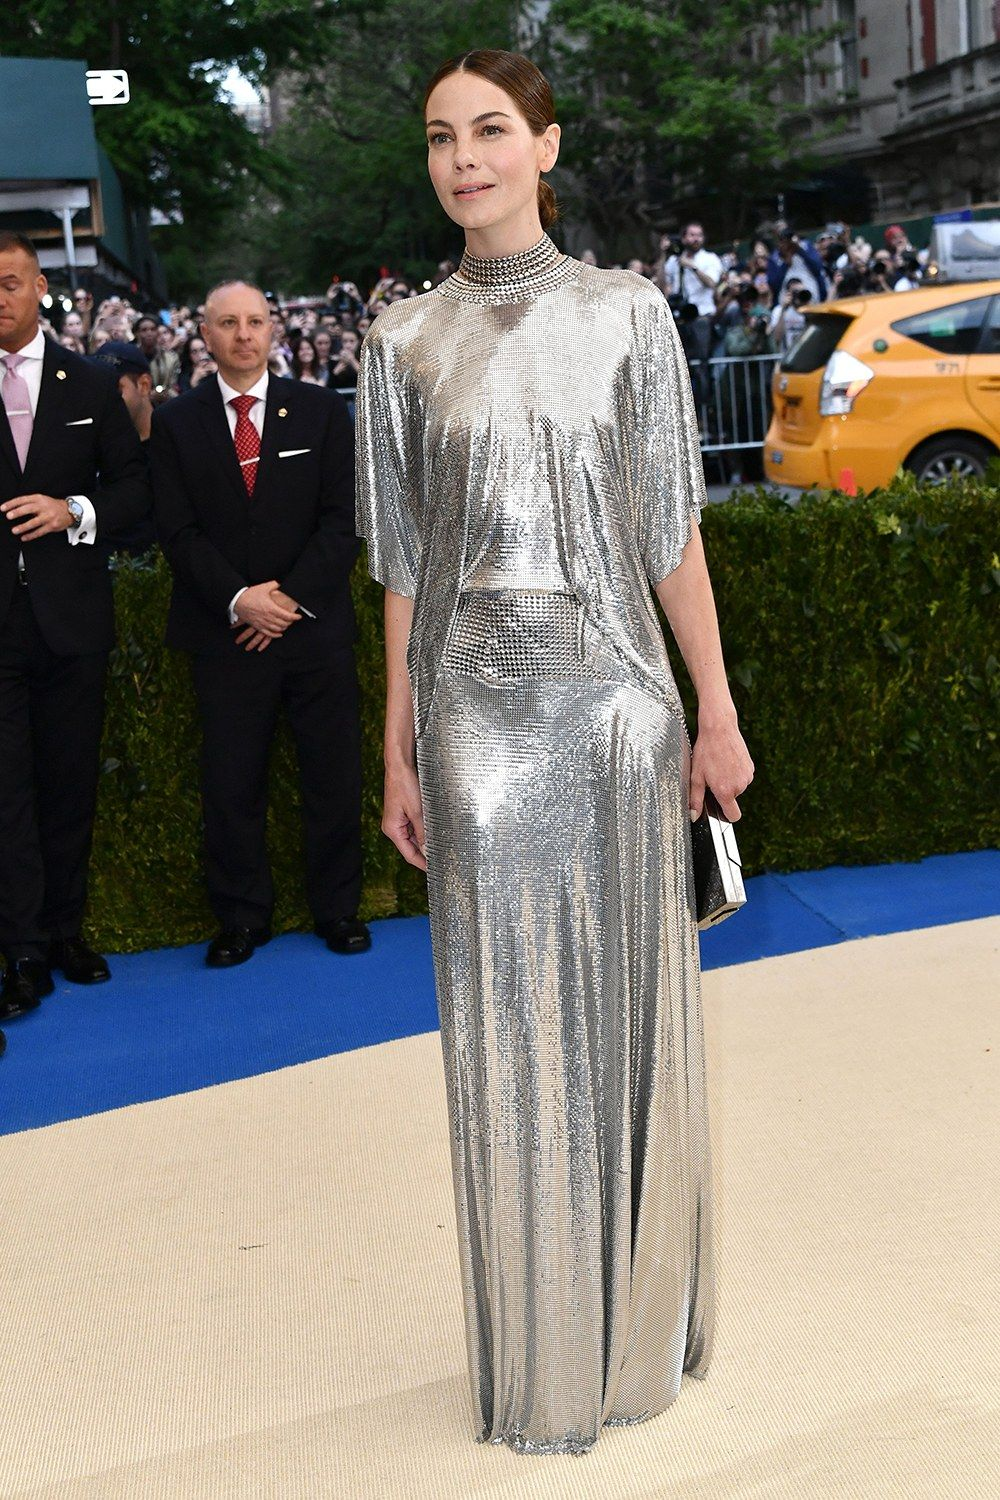 Michelle Monaghan is wearing a floor-sweeping Paco Rabanne chain mail dress designed by Met Gala first-timer Julien Dossena. The dress is evocative of Dossena's Fall 2017 collection, if slightly more demure.